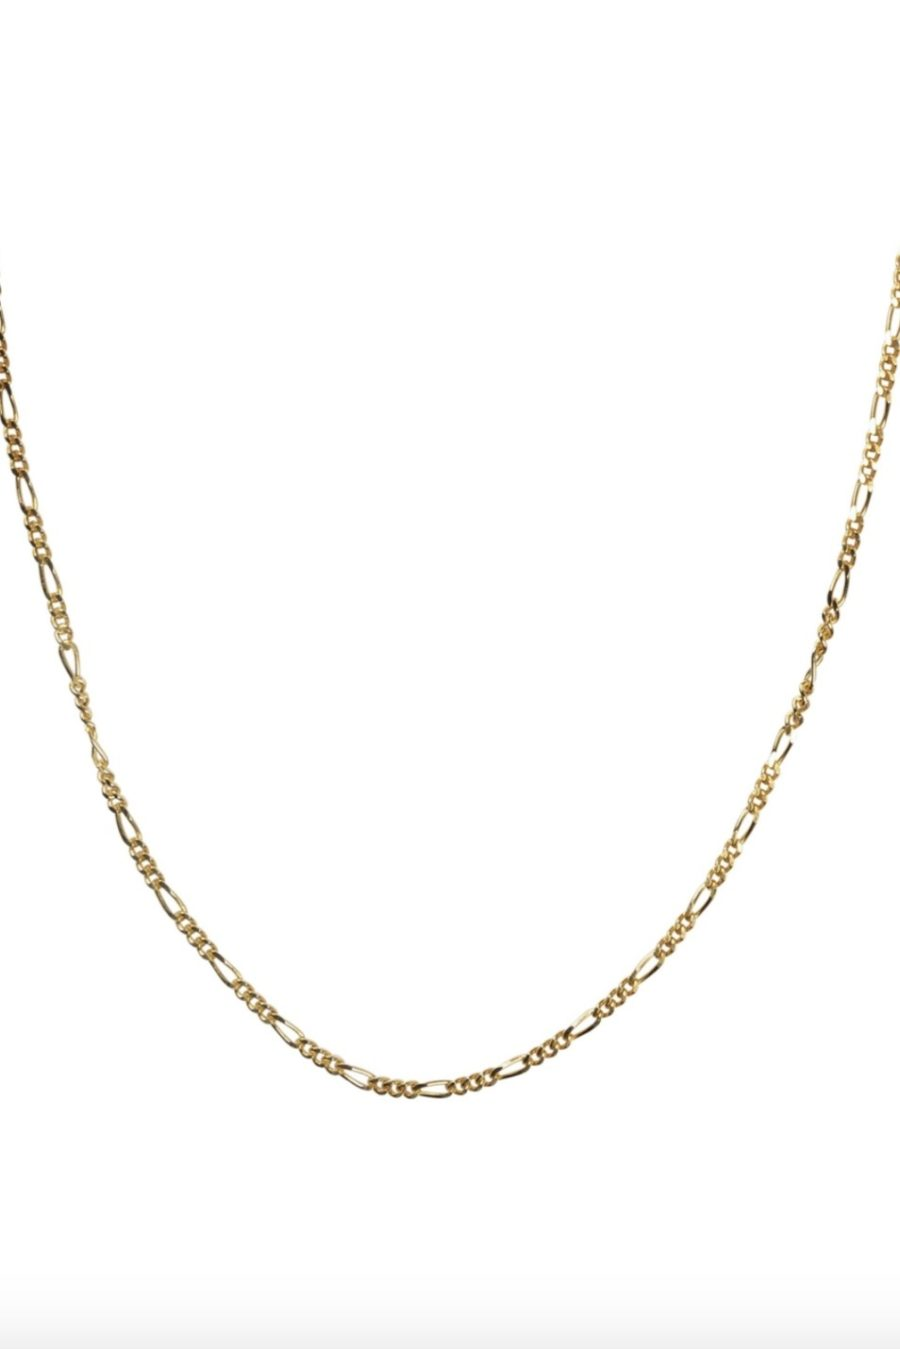 T.I.T.S. - Vintage Chain, Gold